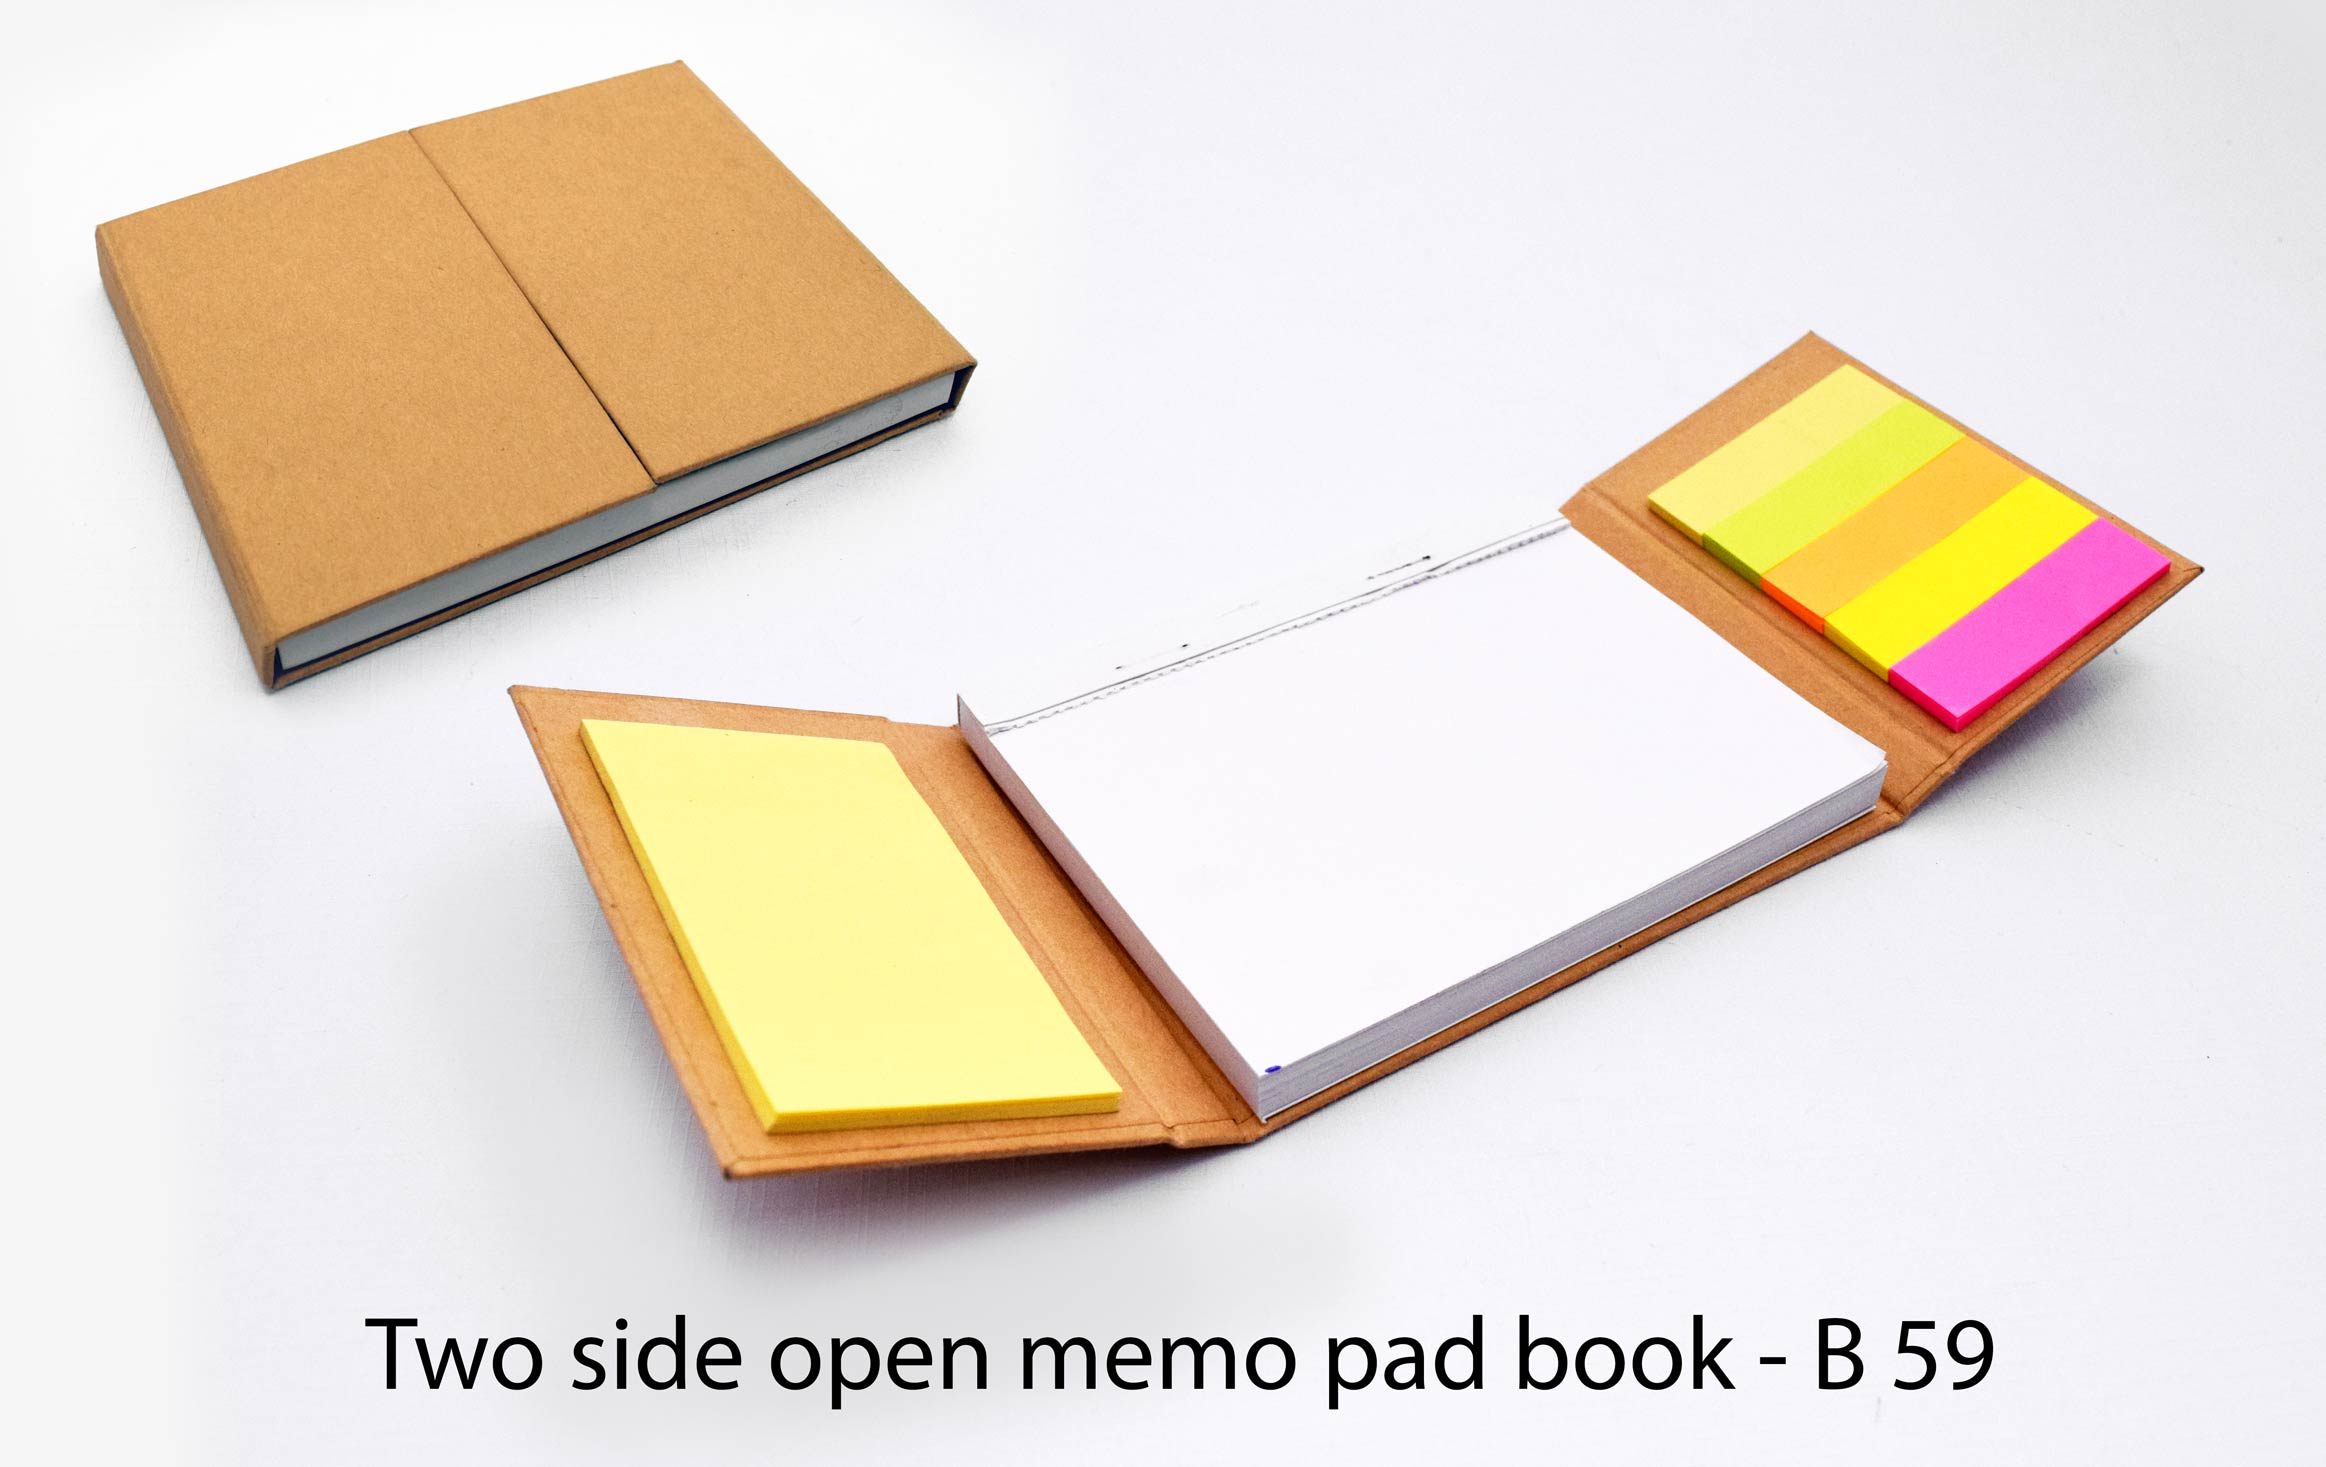 B59 - Two side open memo pad book